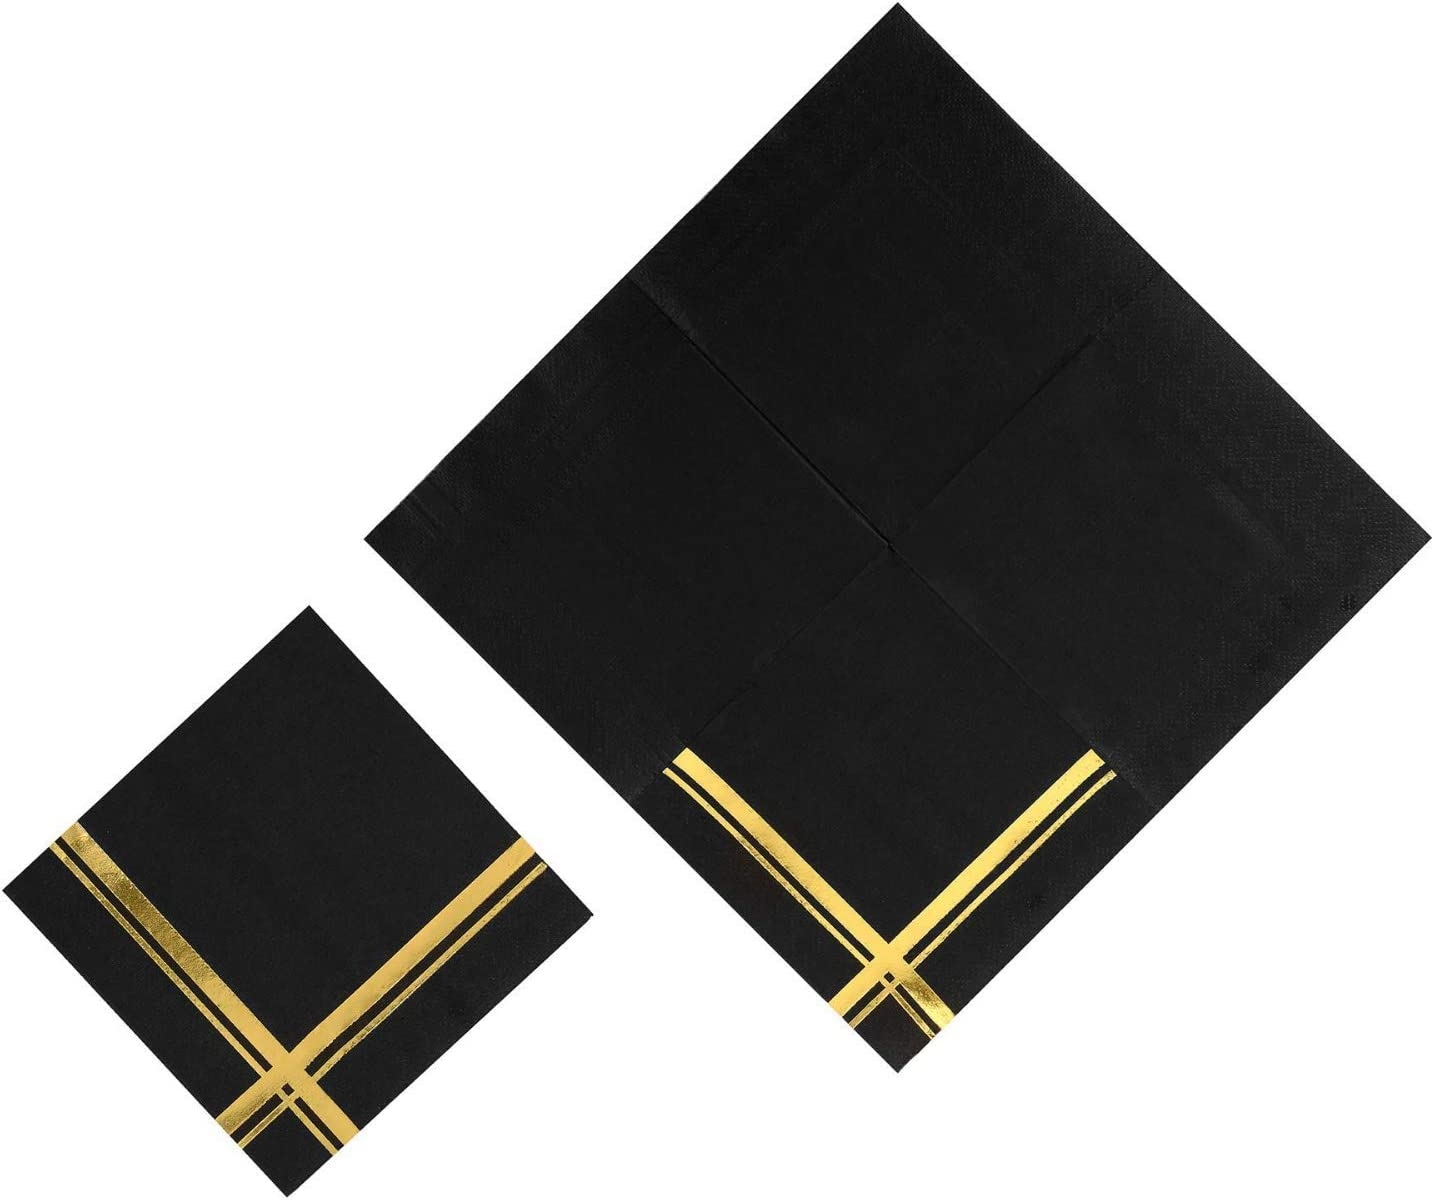 Fanxyware Black Gold Stripe Cocktail Napkins Perfect for Birthdays /& Anniversary Parties 5 x 5 Decorative Paper Cocktail Napkins Shiny Gold Foil Stripe on Black Cocktail Napkin 100 Pack 3-ply